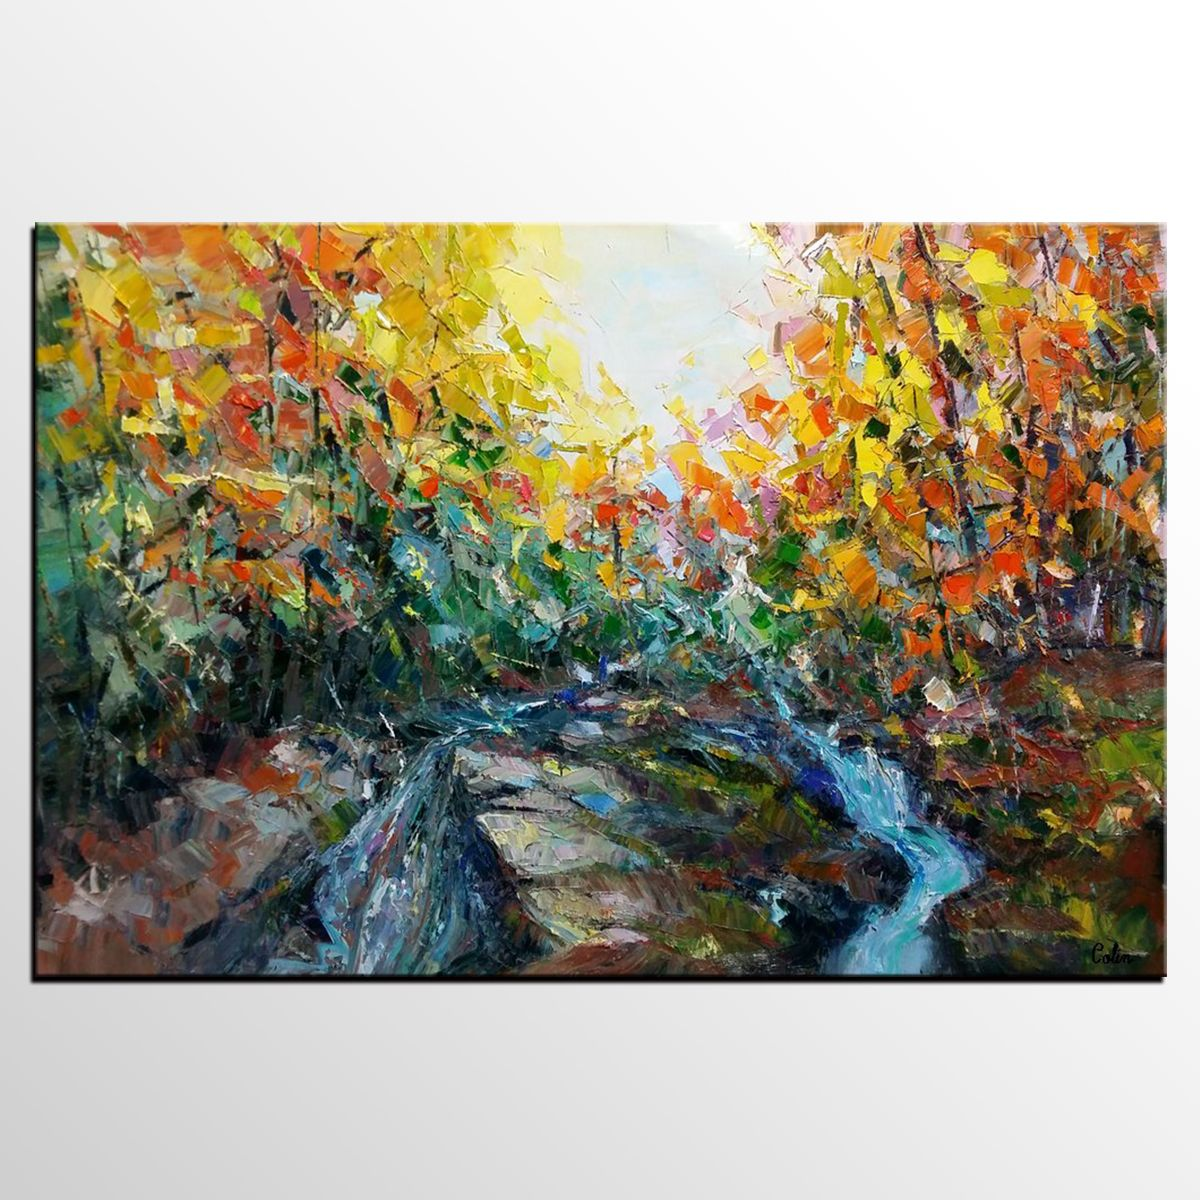 abstract art forest river painting oil painting abstract  - abstract art forest river painting oil painting abstract painting modernart